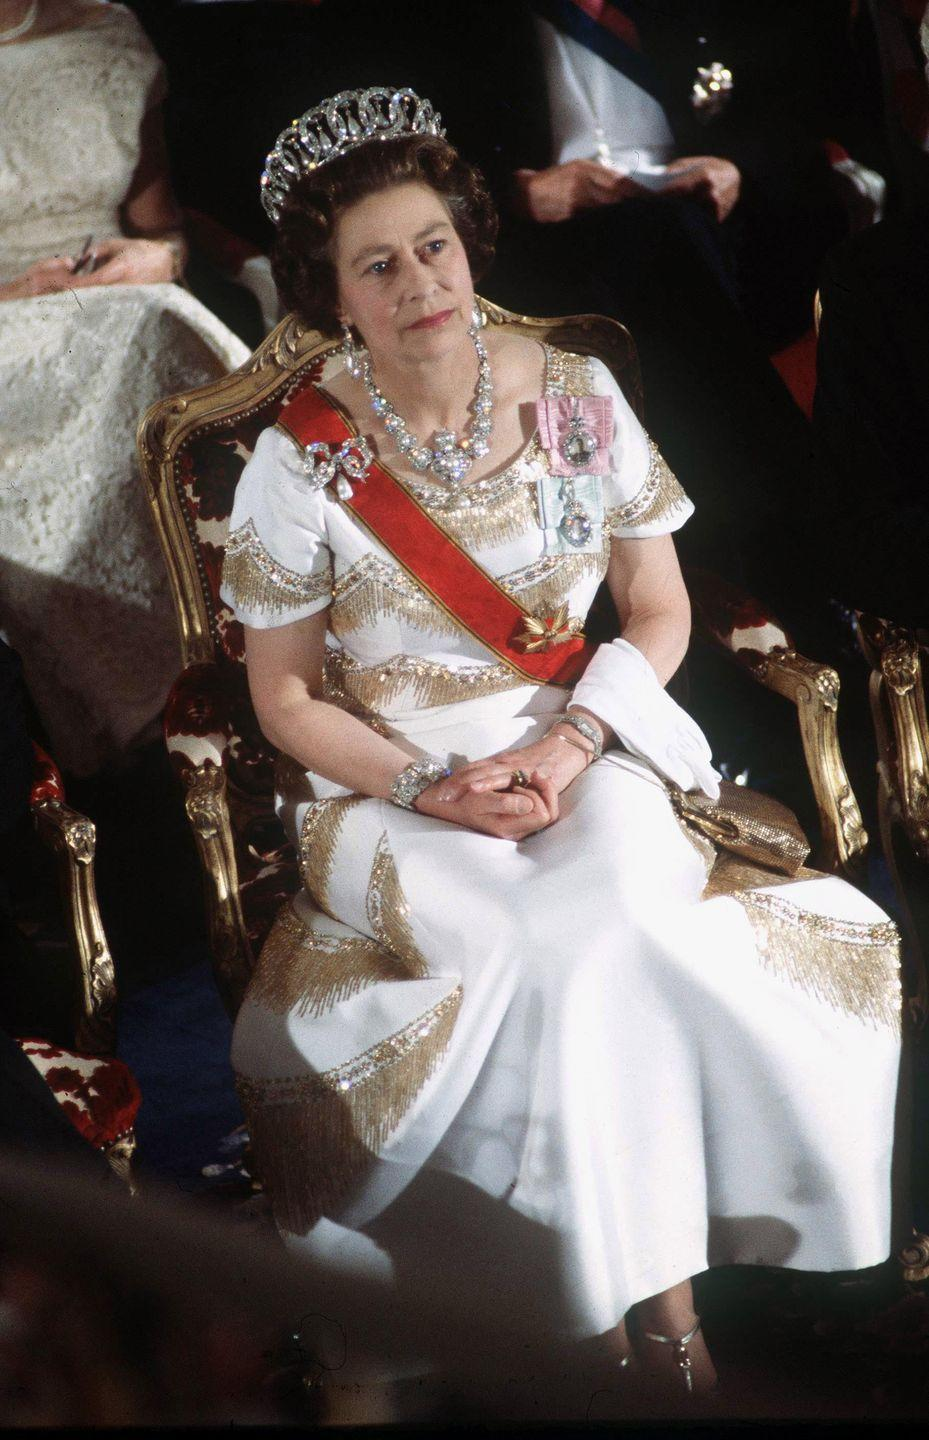 <p>The Queen's diamond and pearl looped tiara, worn here on May 22, 1978, is known as the Grand Duchess Of Vladimir Of Russia Tiara, and the matching necklace and earrings were originally a gift to Queen Victoria. The accompanying brooch, a bow of diamonds with a pearl drop, was given to Queen Mary on her wedding day.</p>